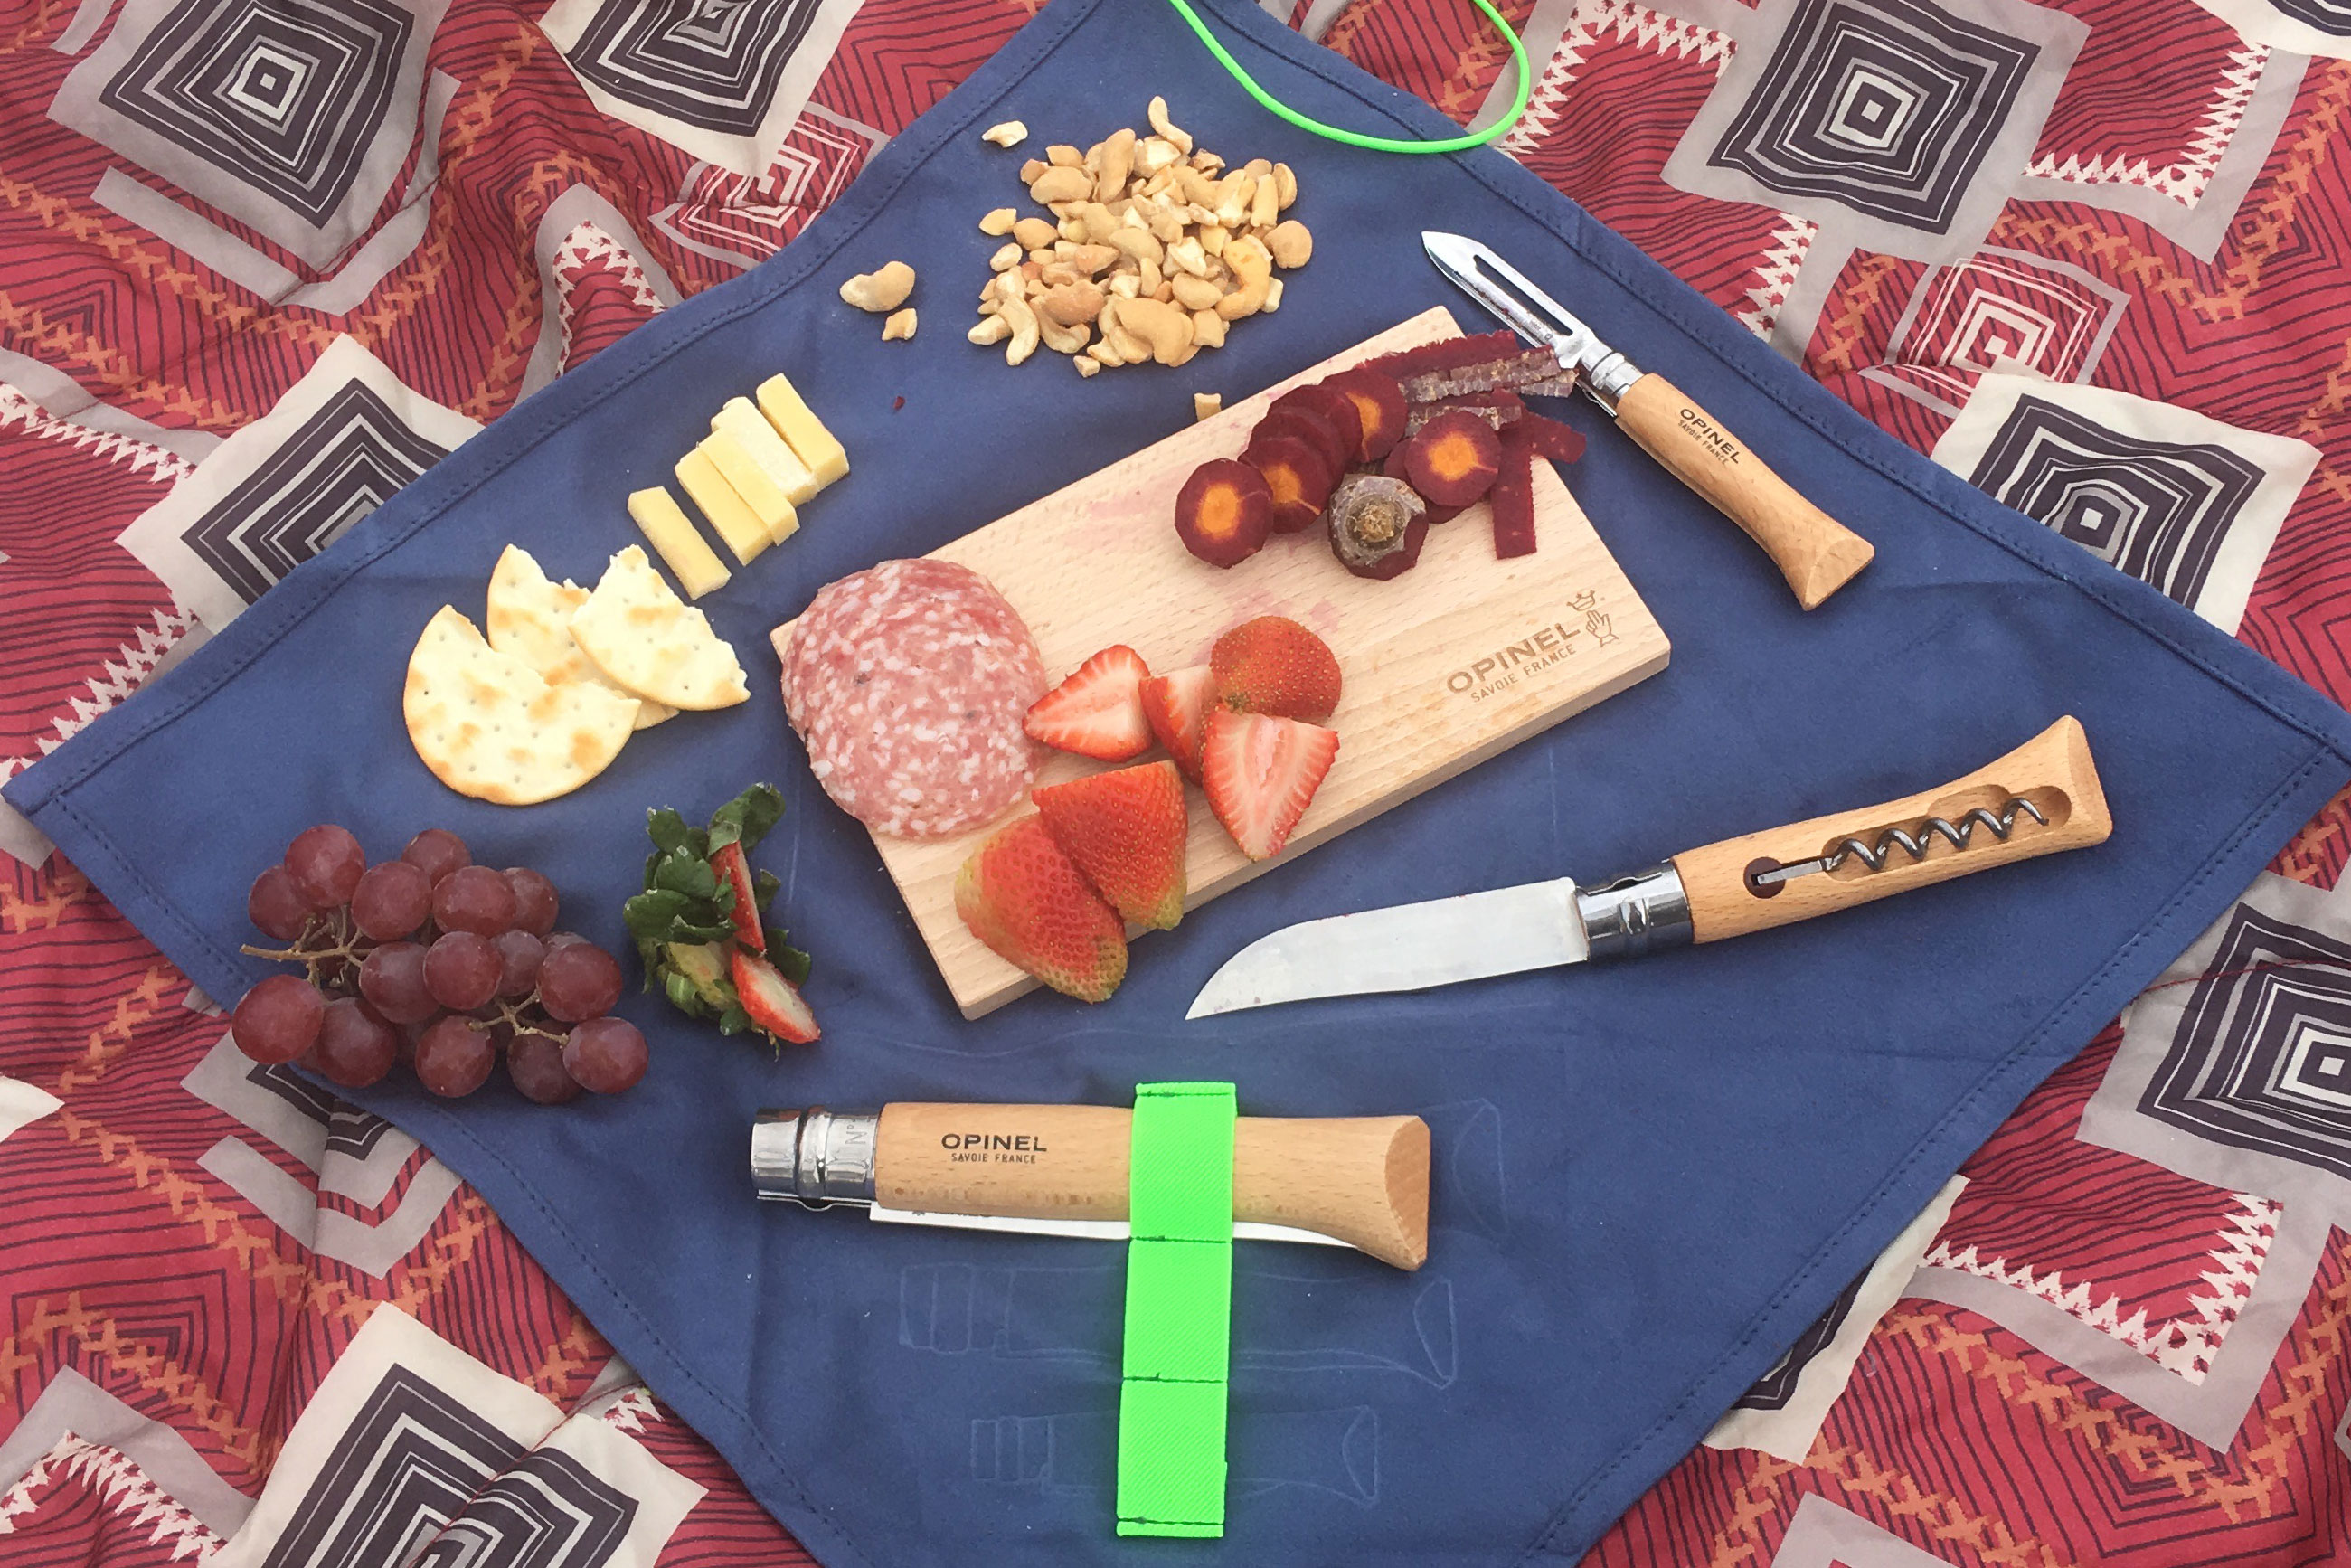 Picnic charcuterie with Opinel Nomad knife kit